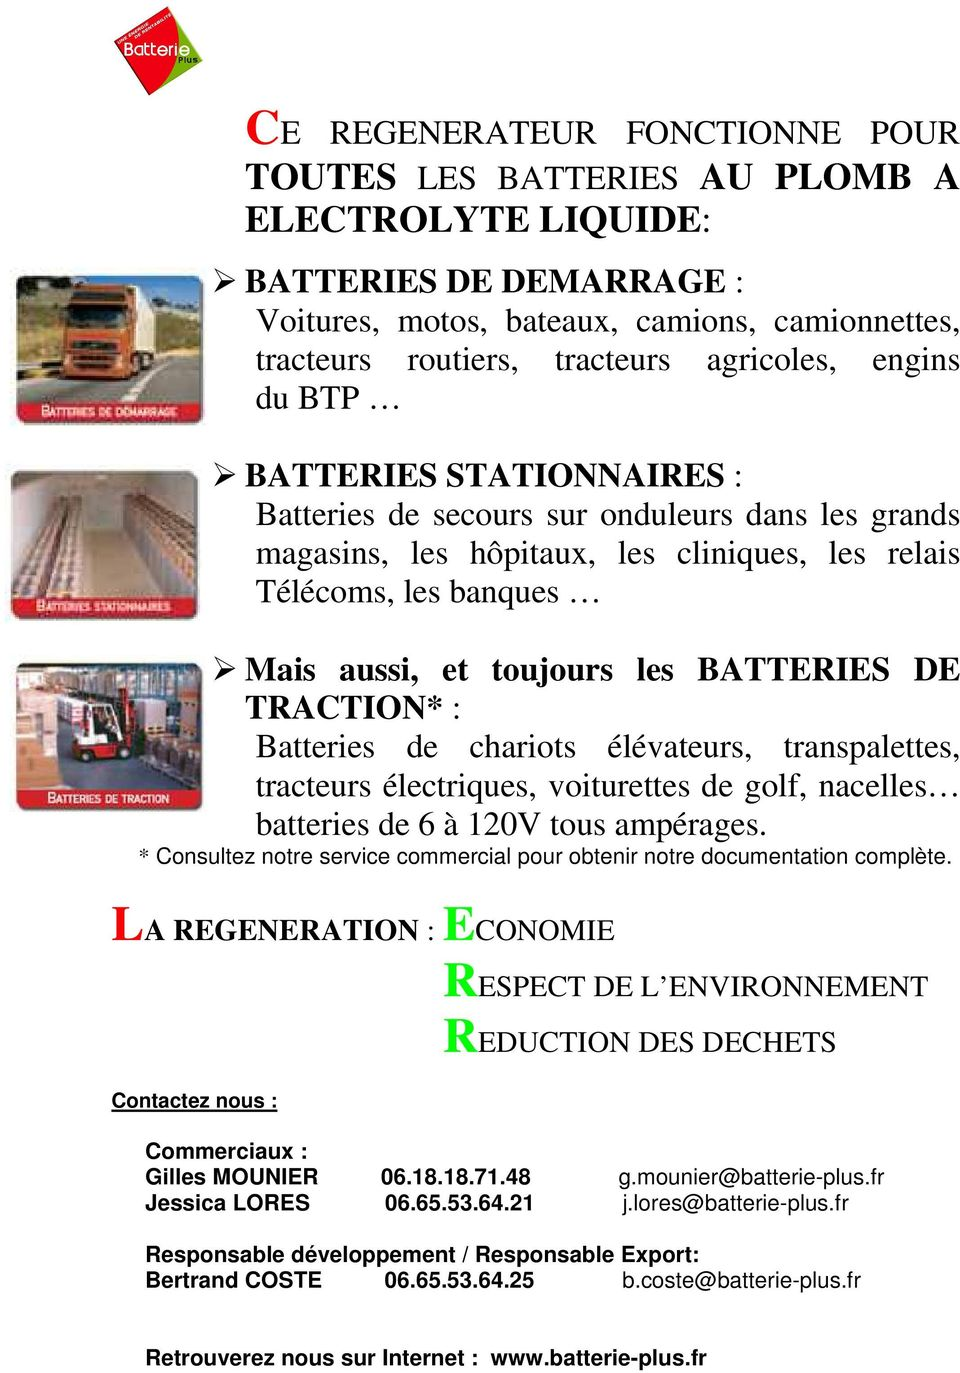 BATTERIES DE TRACTION* : Batteries de chariots élévateurs, transpalettes, tracteurs électriques, voiturettes de golf, nacelles batteries de 6 à 120V tous ampérages.